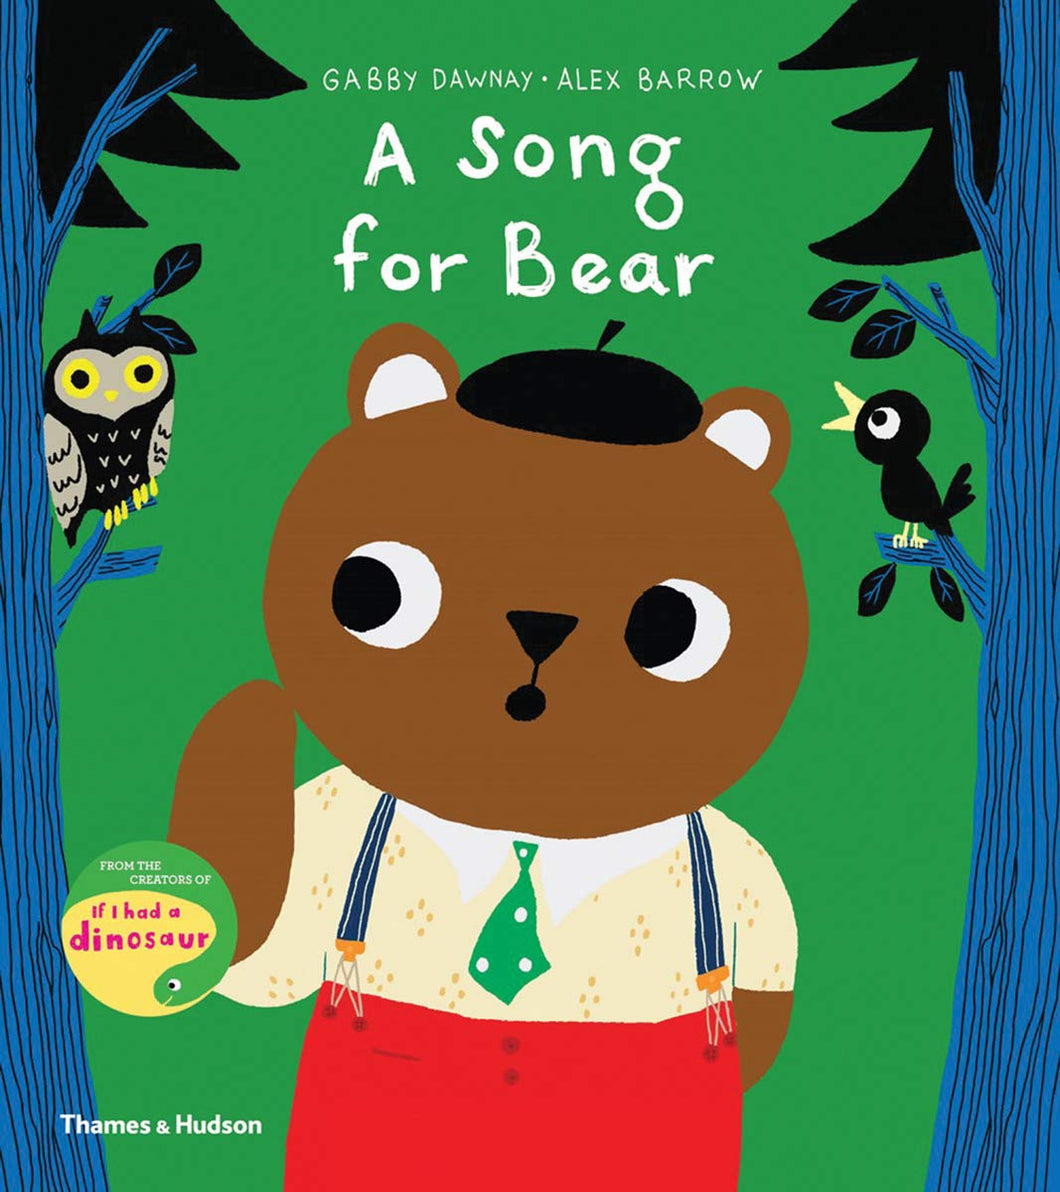 A Song for Bear by Gabby Dawnay & Alex Barrow